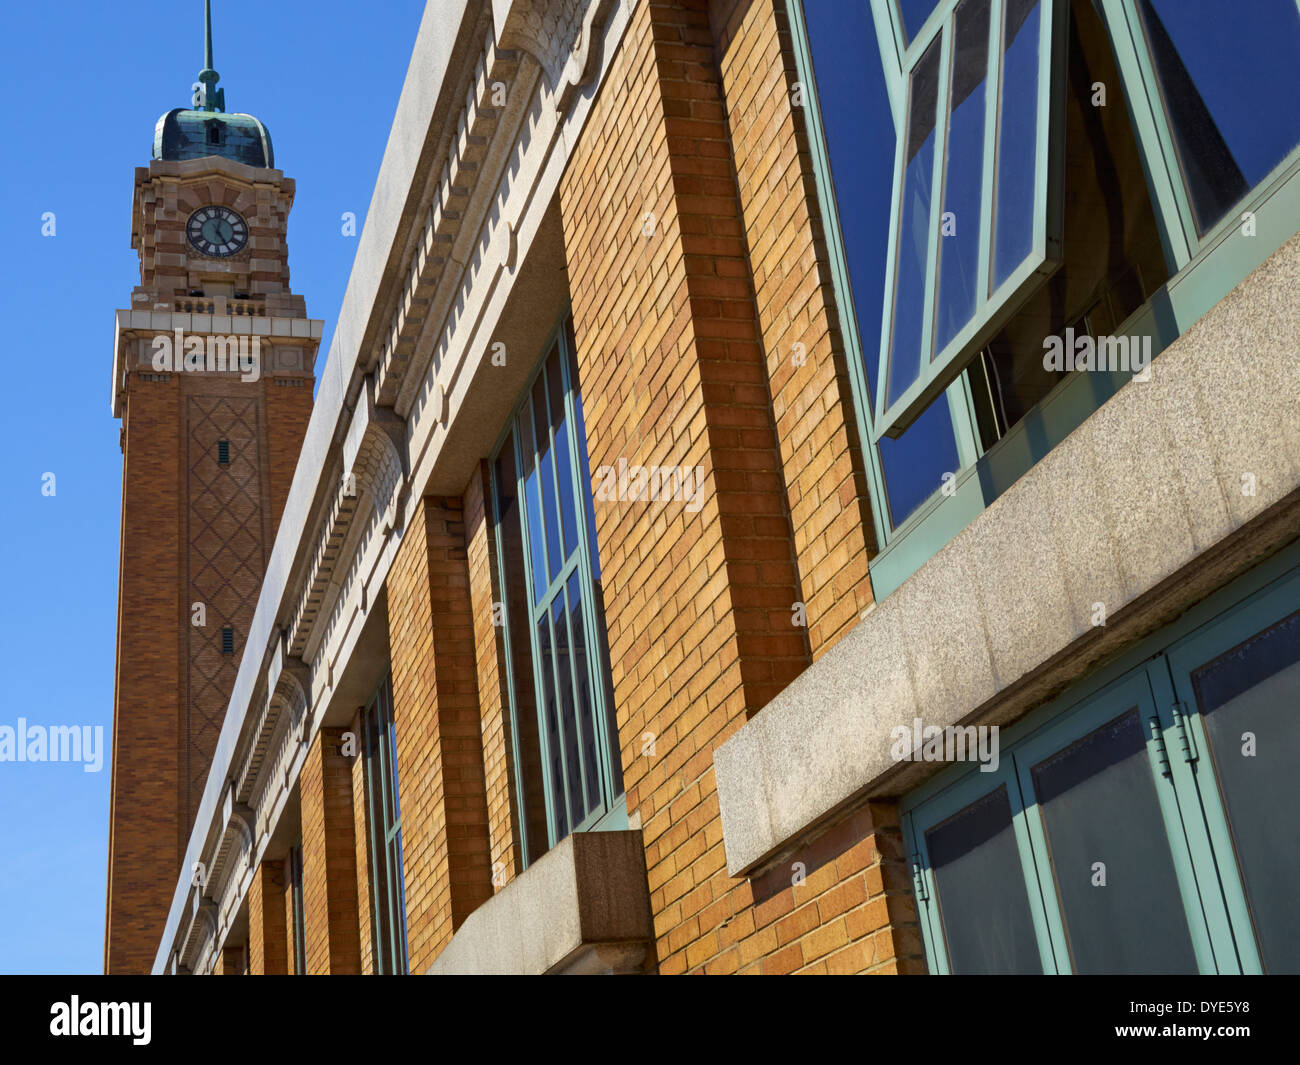 Westside Tower Stock Photos & Westside Tower Stock Images - Alamy